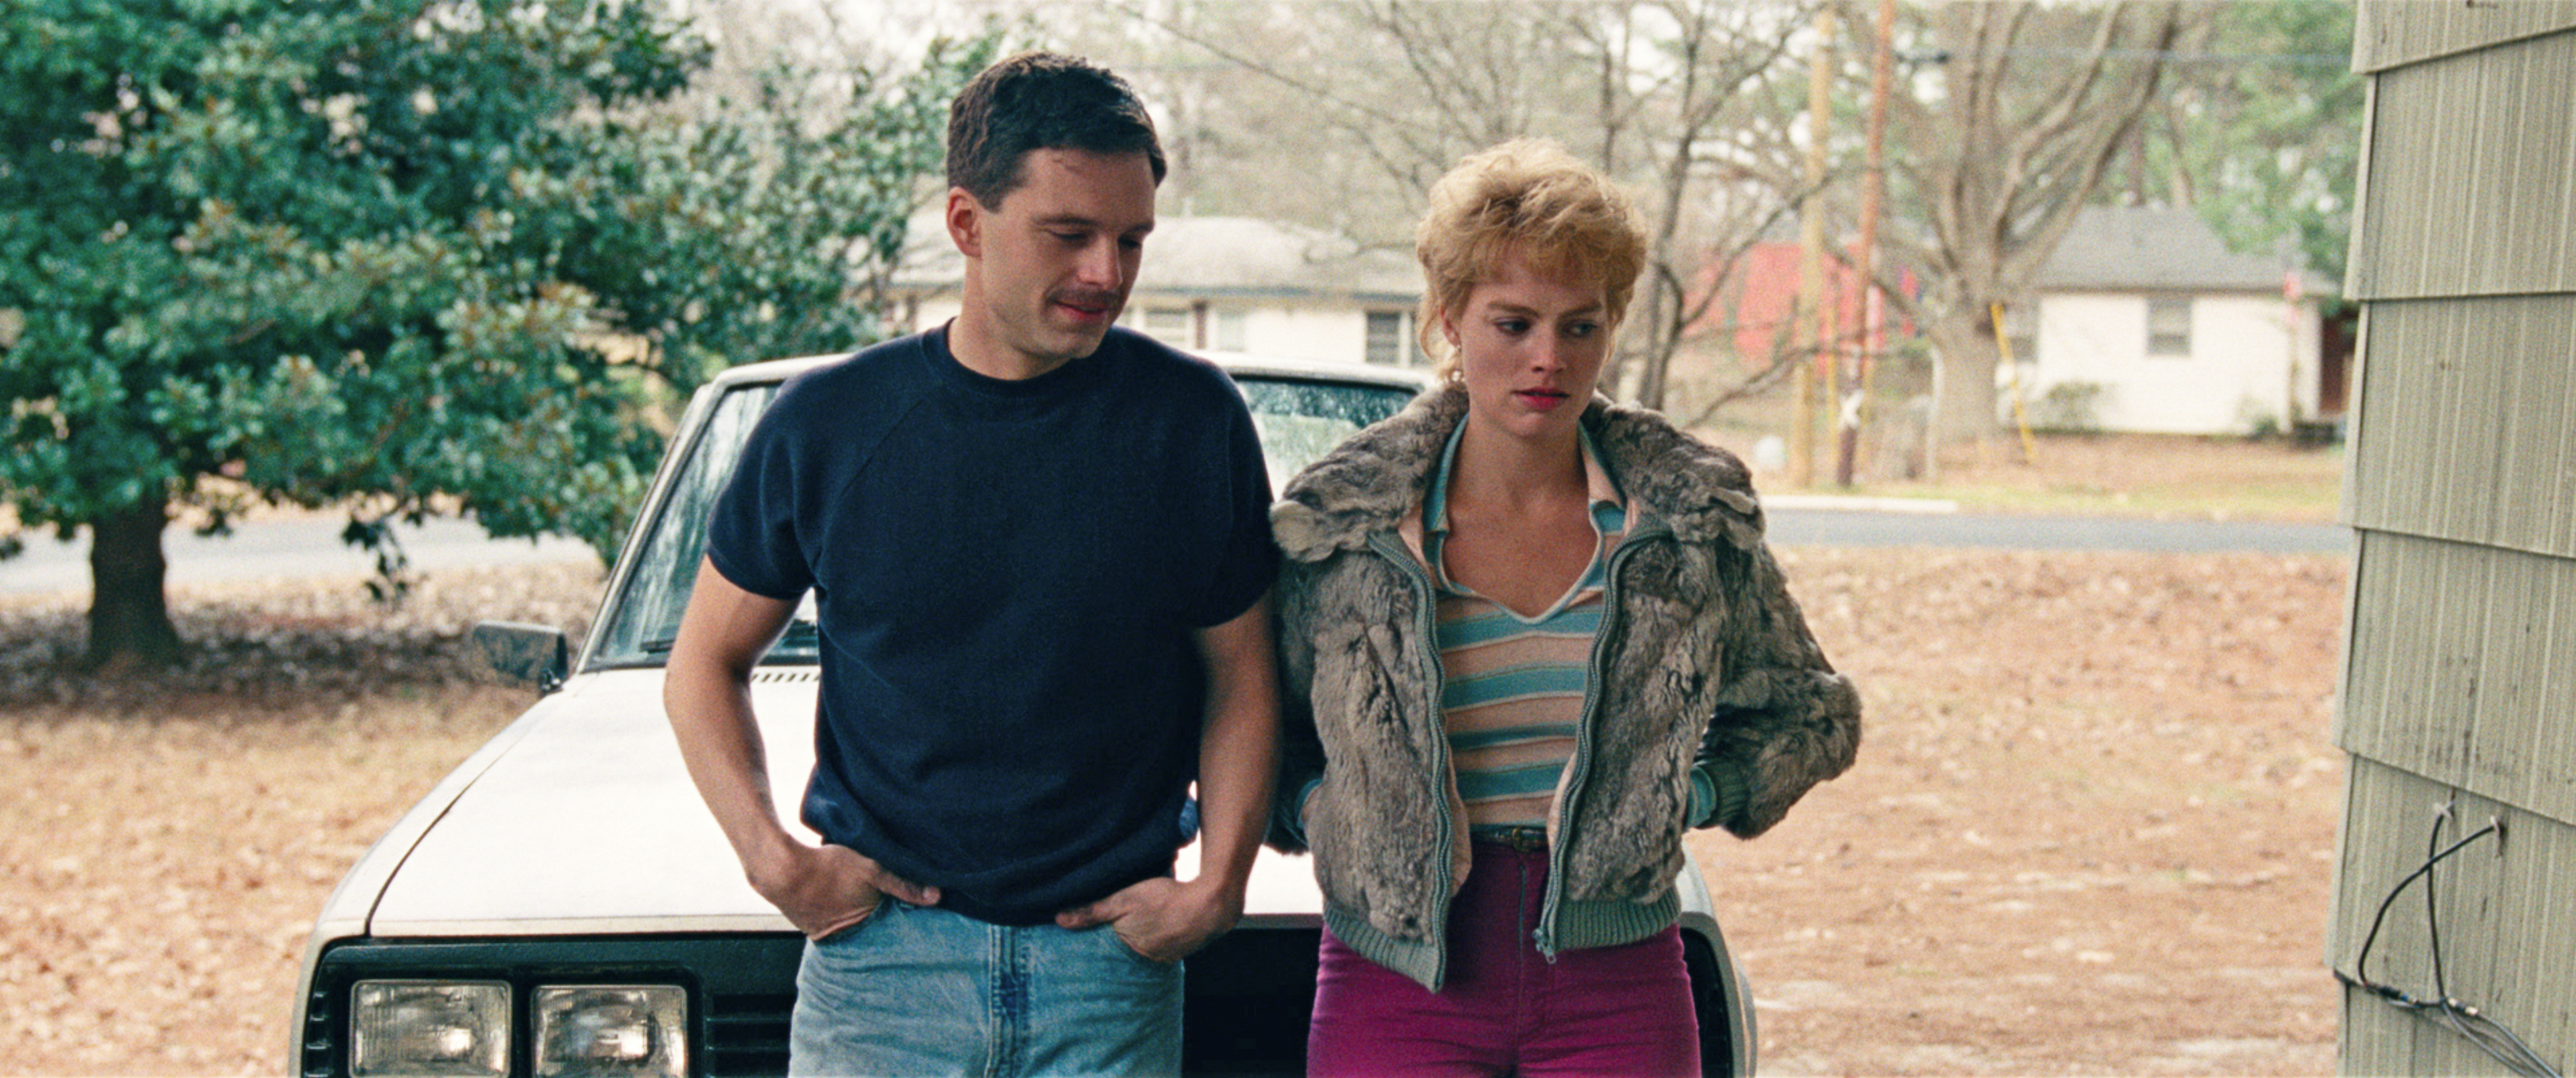 7- Young Tonya Harding (Margot Robbie) and Jeff Gillooly (Sebastian Stan) in I, TONYA, courtesy of NEON and 30WEST